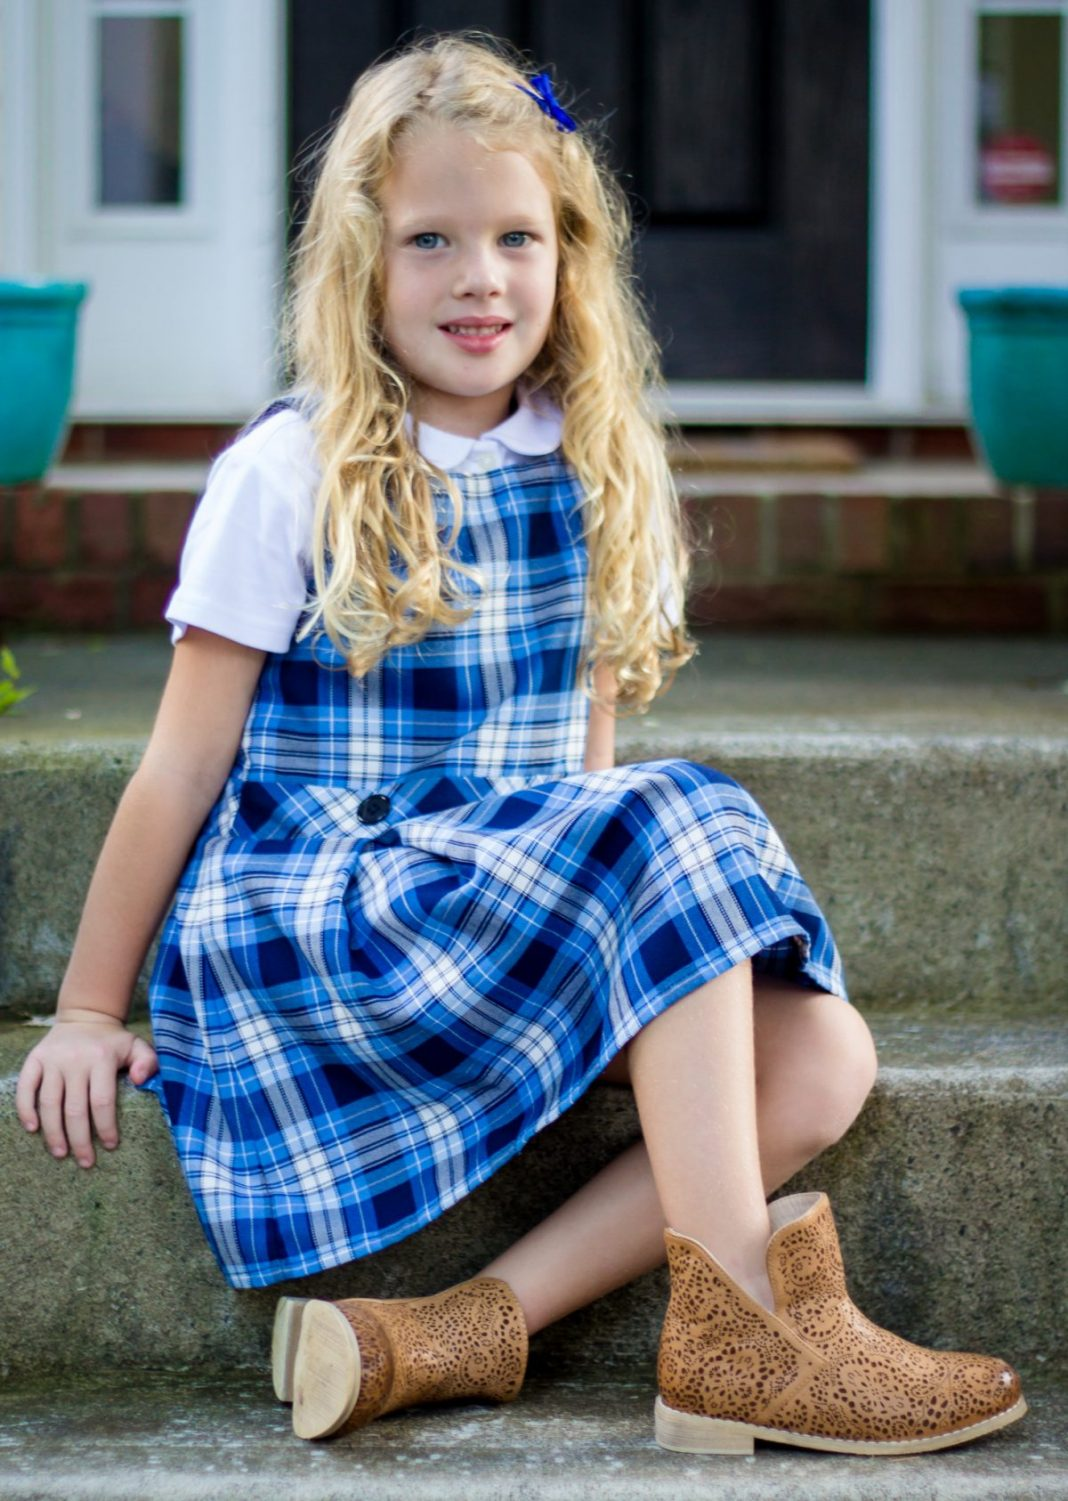 6 Reasons Parents Want Uniforms